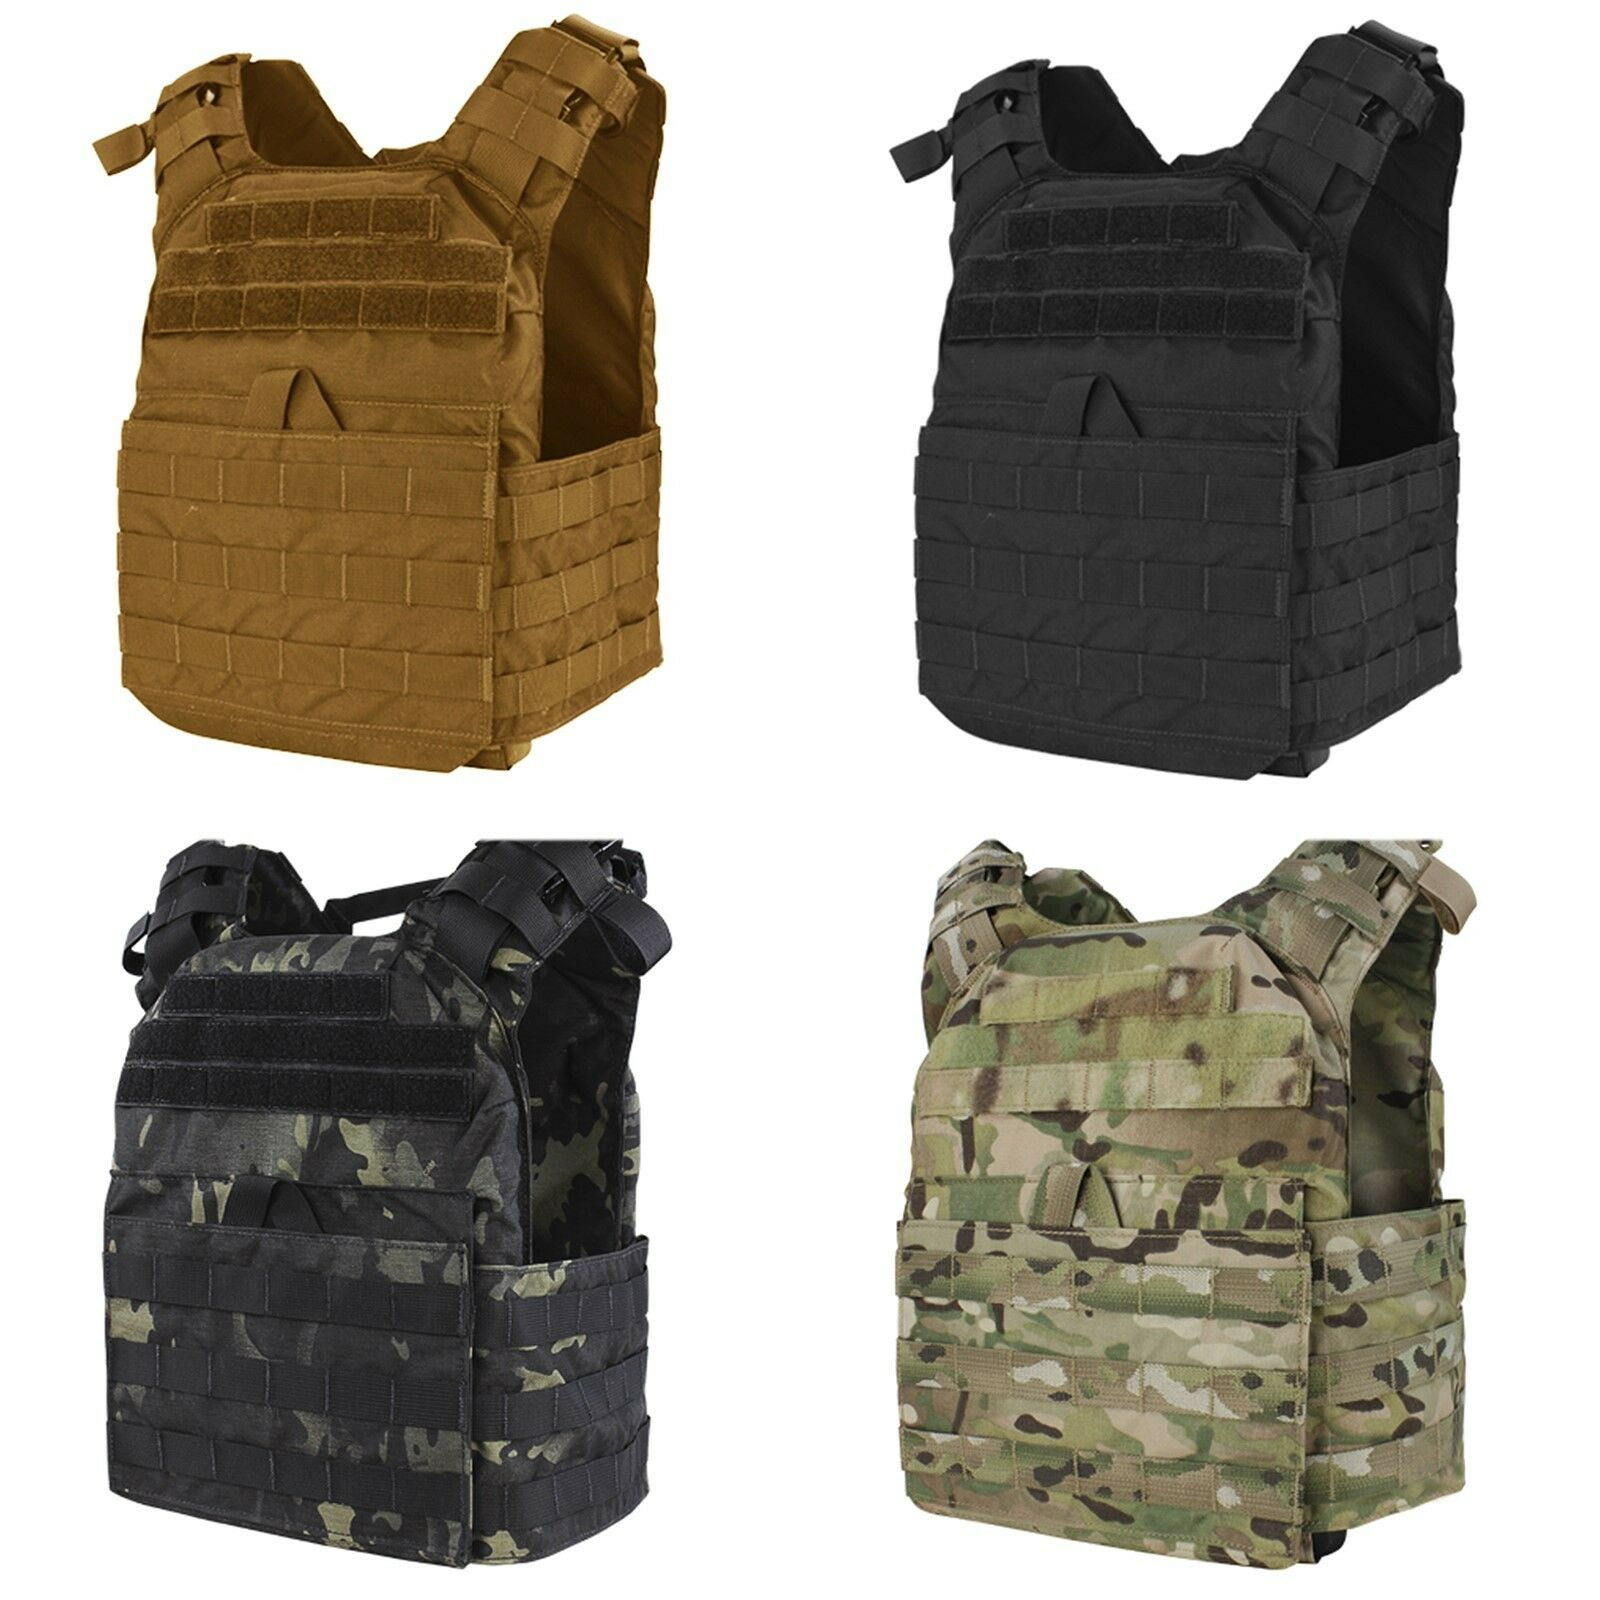 Condor US1020 MOLLE PALS First Responder Lightweight Easy Access Plate Carrier